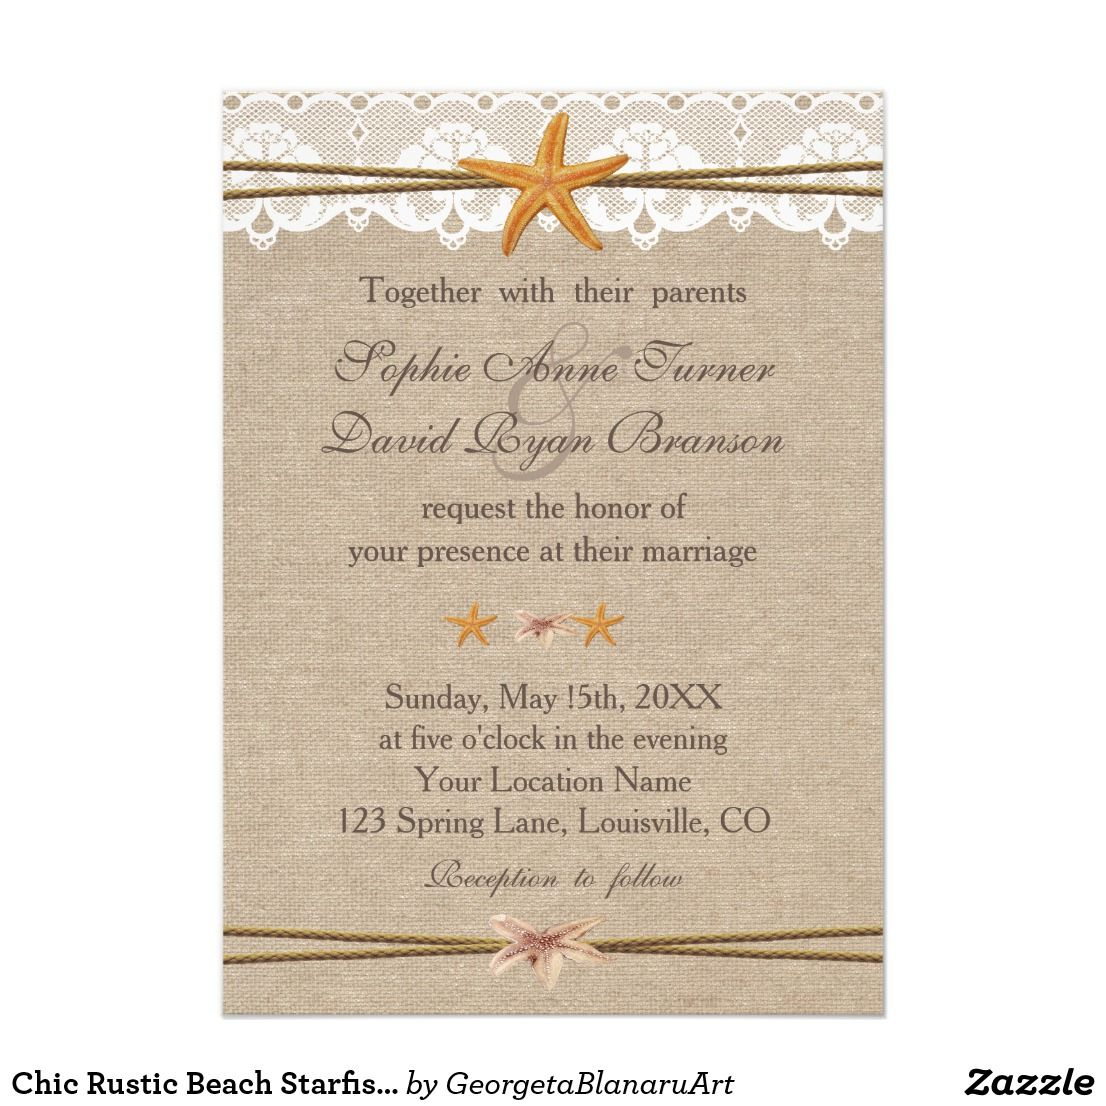 Chic Rustic Beach Starfish Lace Wedding Invite | Wedding & Bridal ...